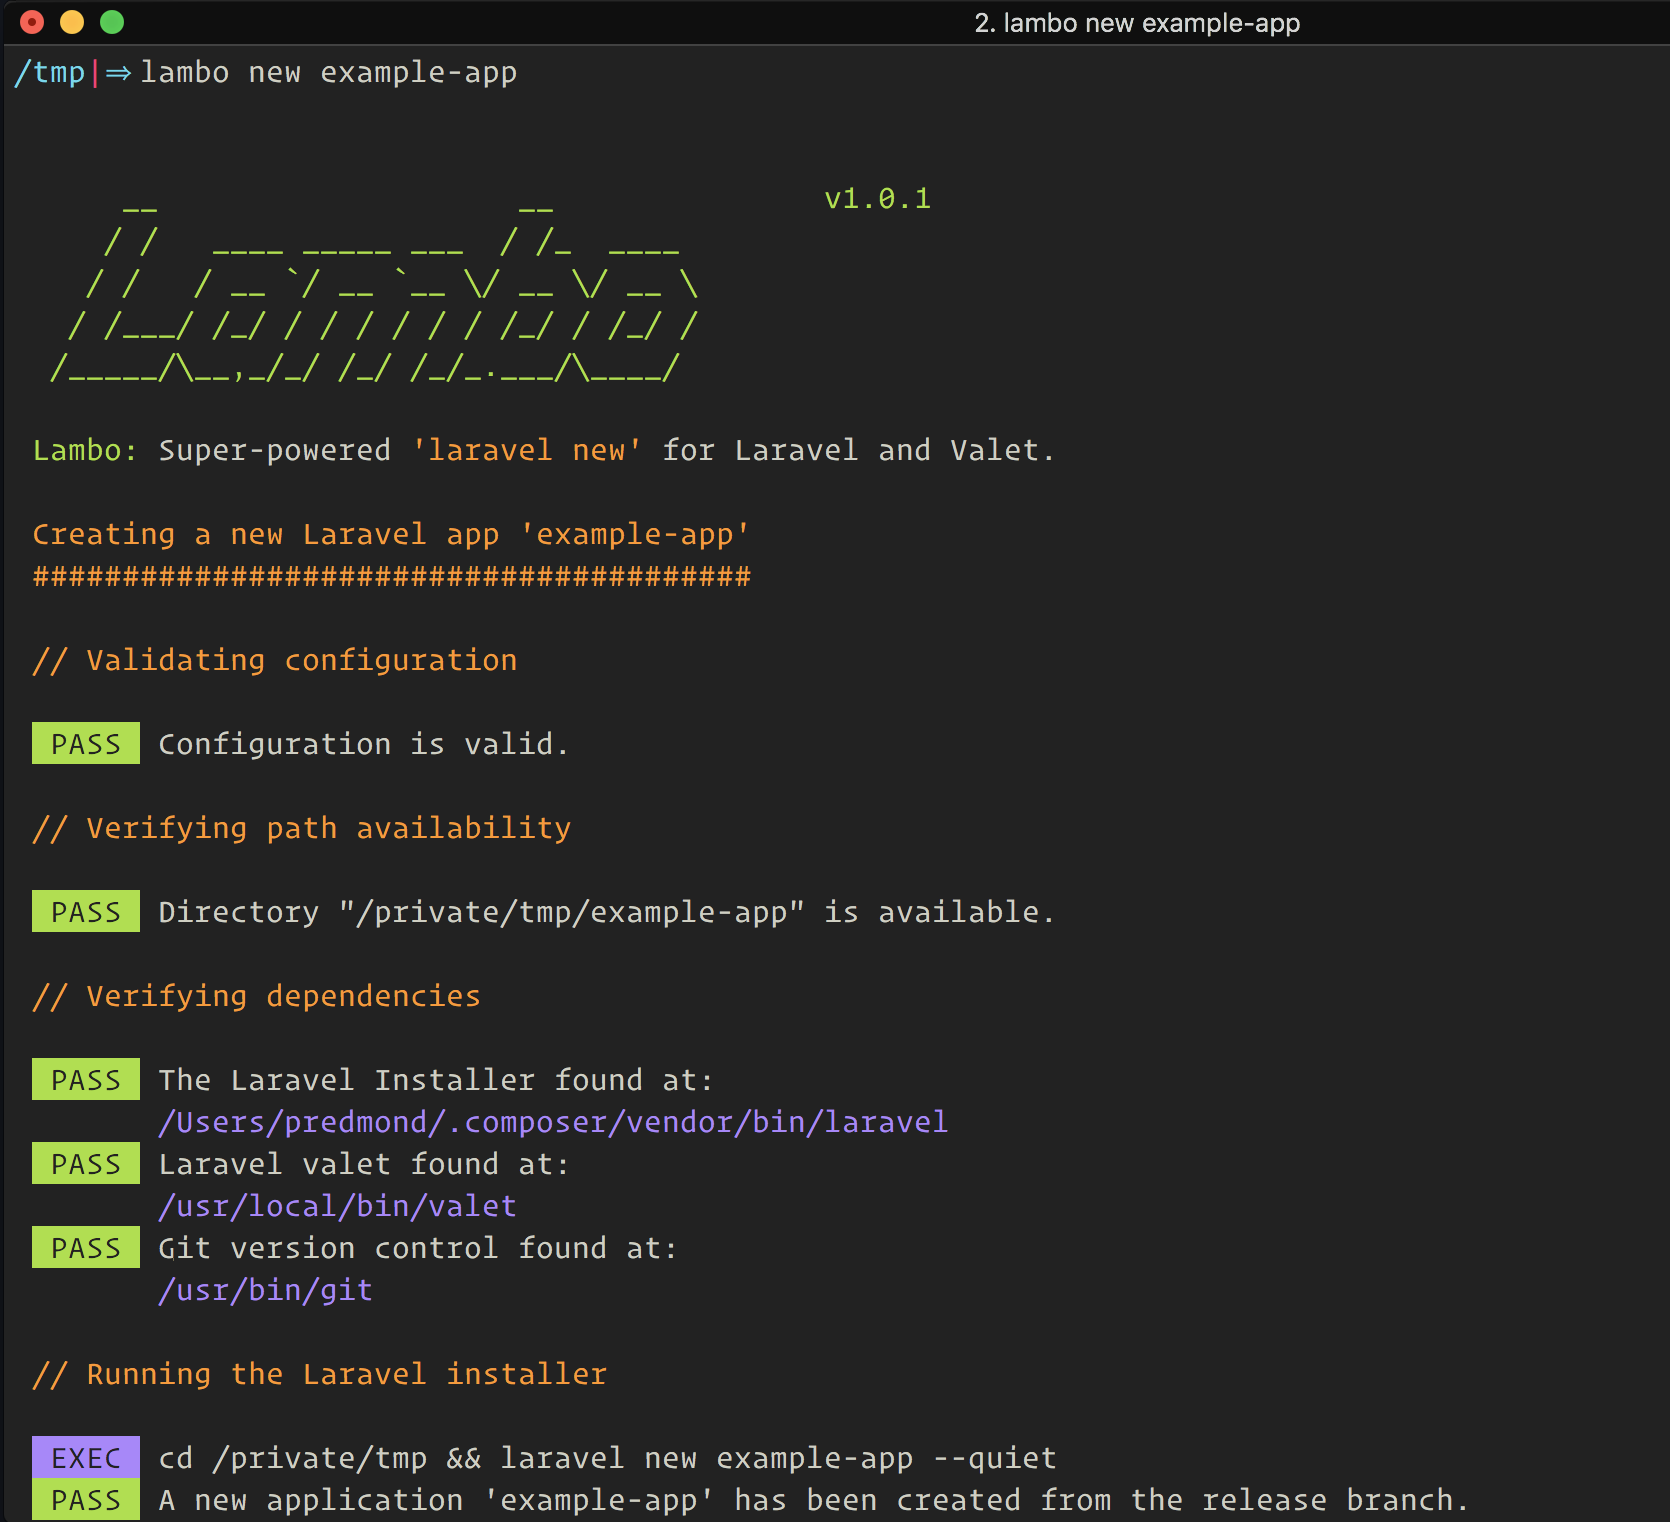 lambo new example-app command line output